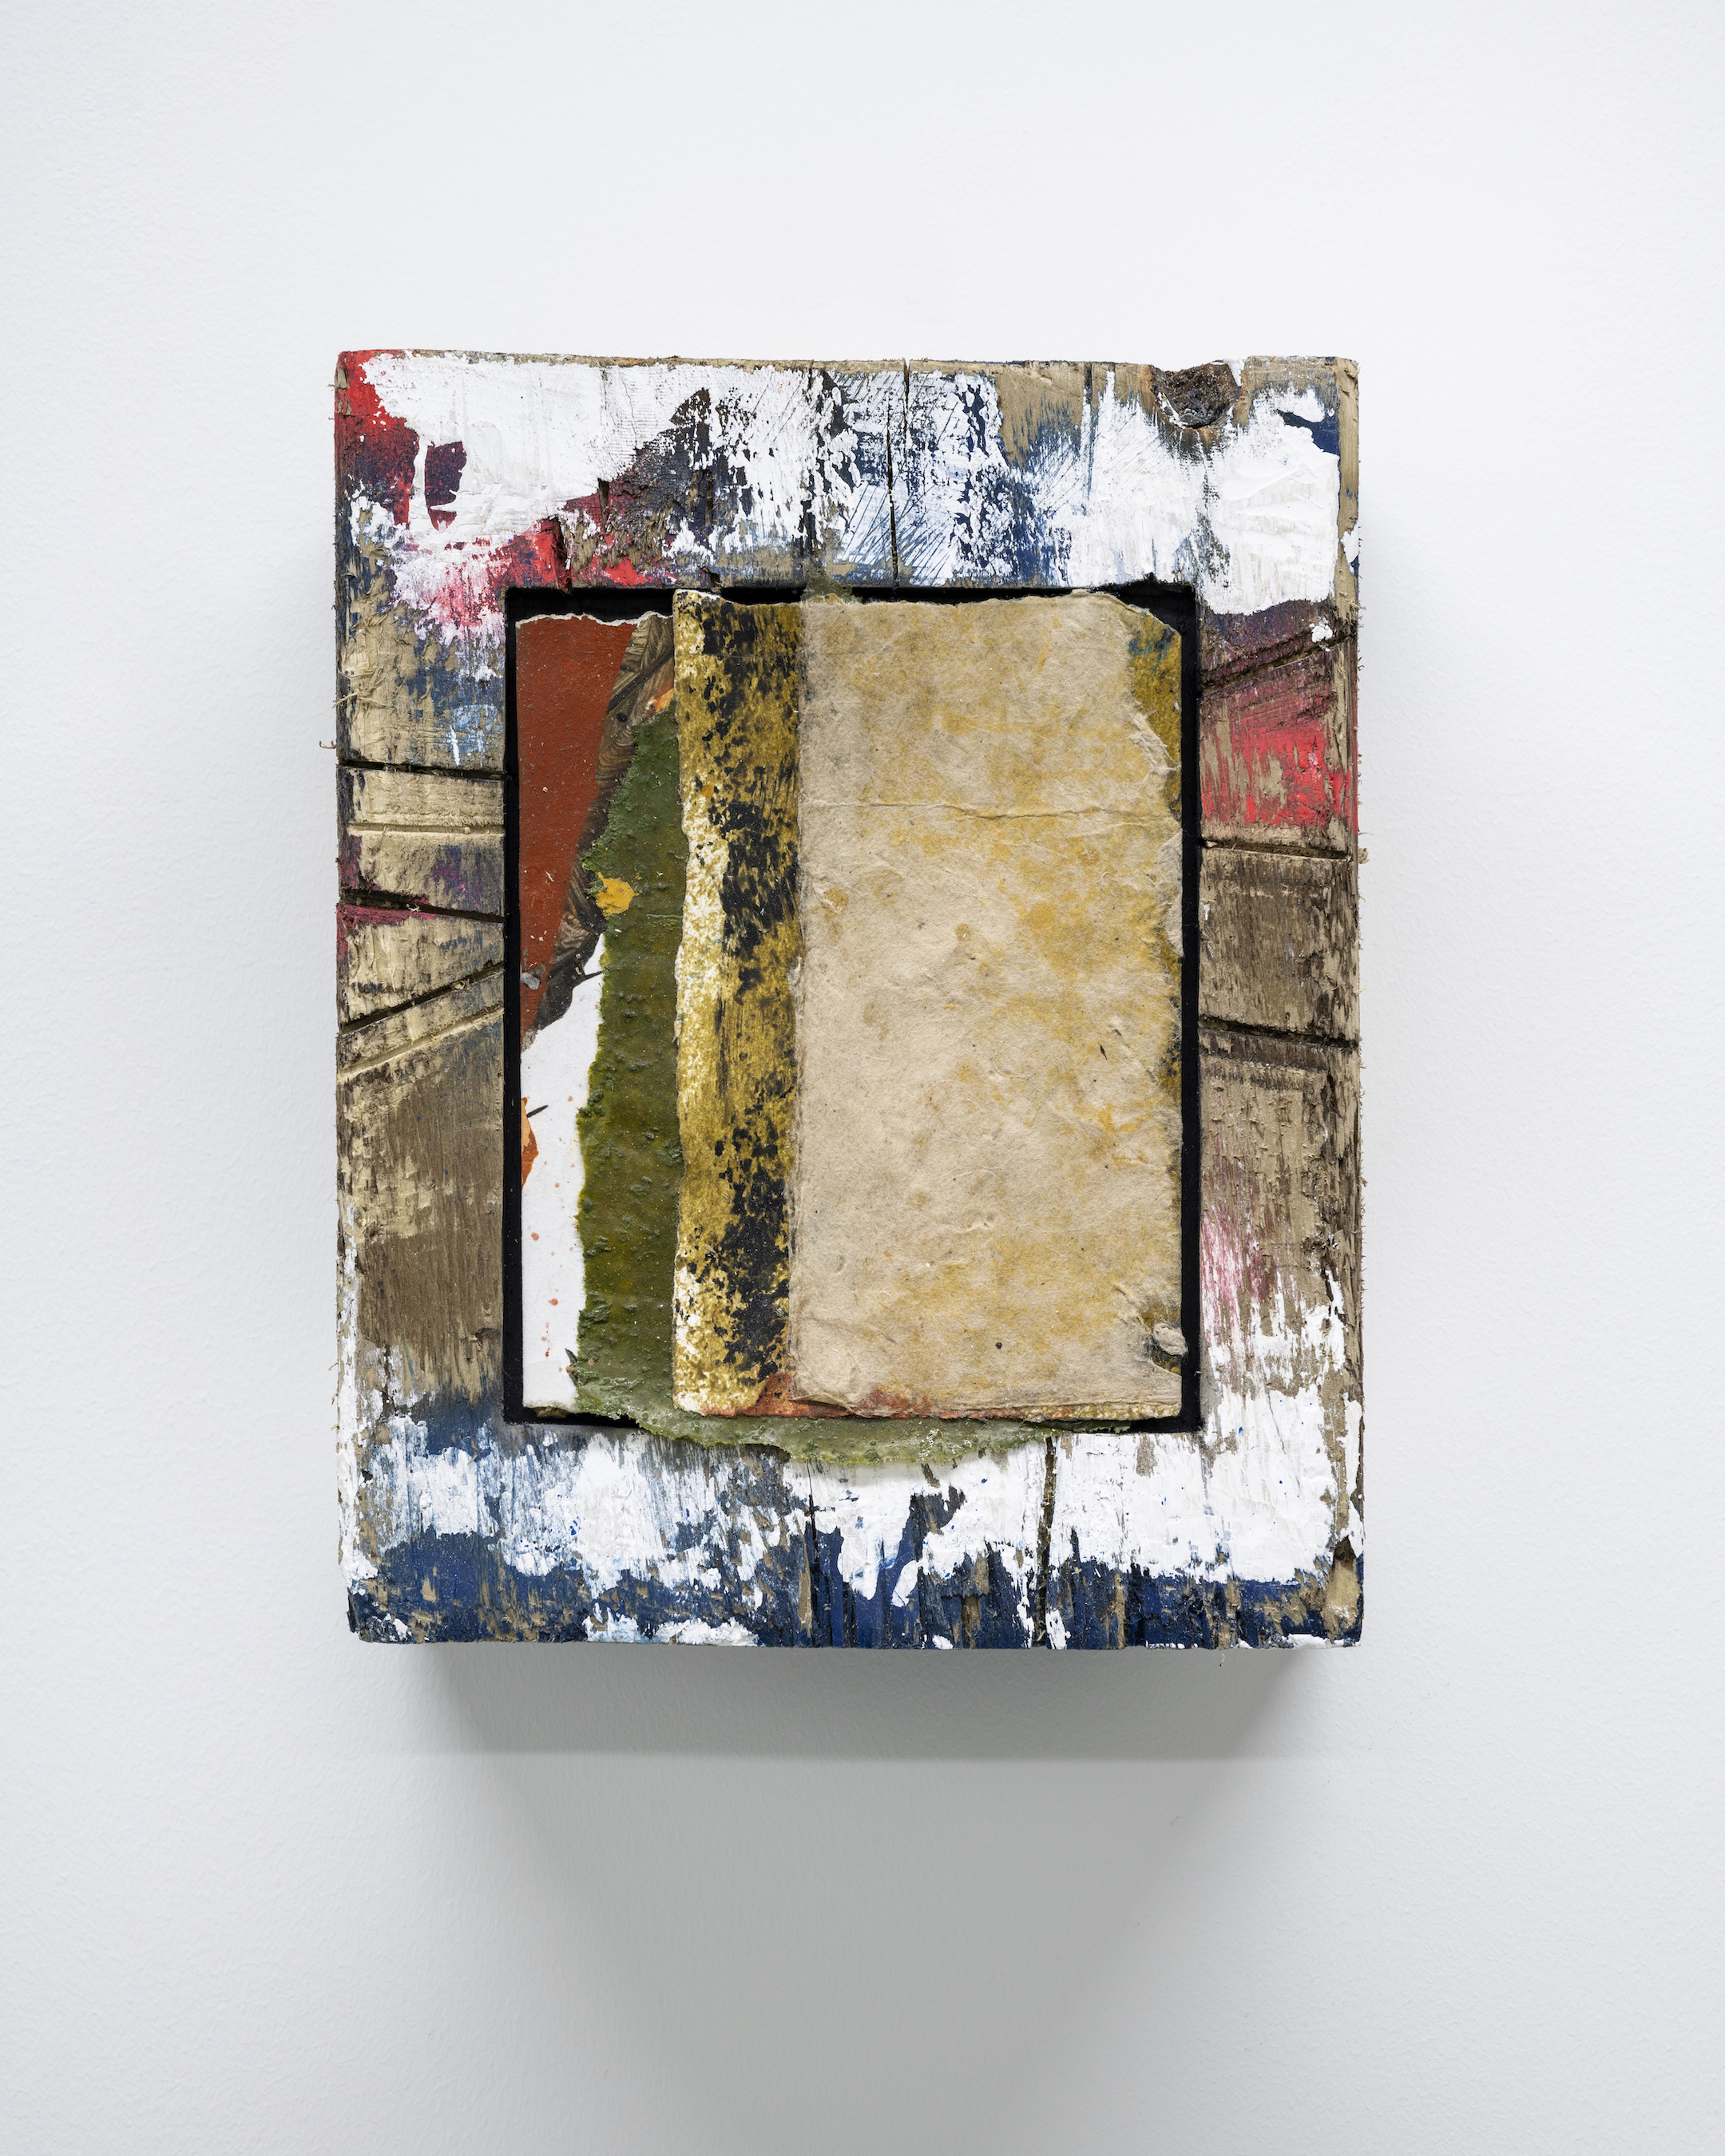 Luca Longhi, 'Untitled (tentative)' 2020. Oil, acrylic, sawdust and scrap paper 17 x 13cm. Photo credit: Damian Griffiths